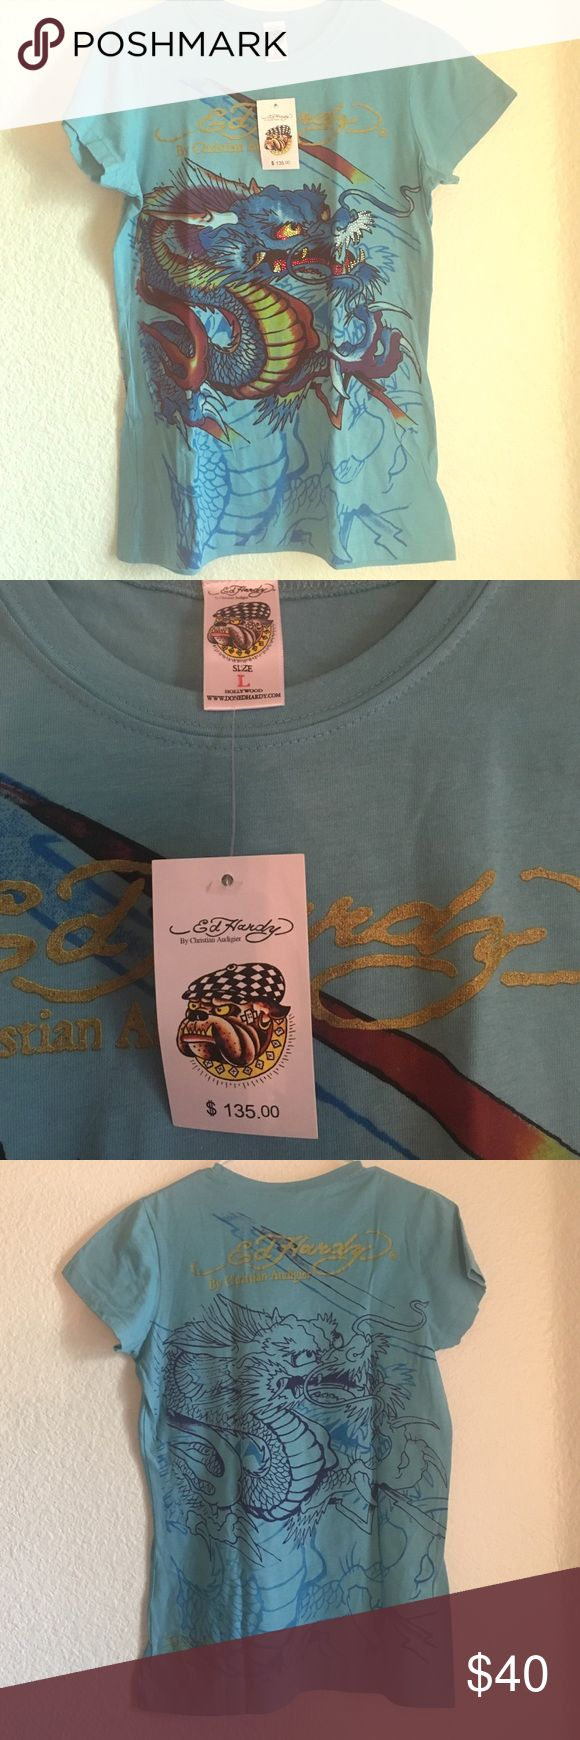 *NEW WITH TAGS* women's blue Ed Hardy tshirt, SZ L *NEW WITH TAGS** never been worn, blue Ed Hardy t-shirt, size Large! A friend of mine had a bunch left over from an old store and gave them to me to sell so price is def negotiable! Ed Hardy Tops Tees - Short Sleeve